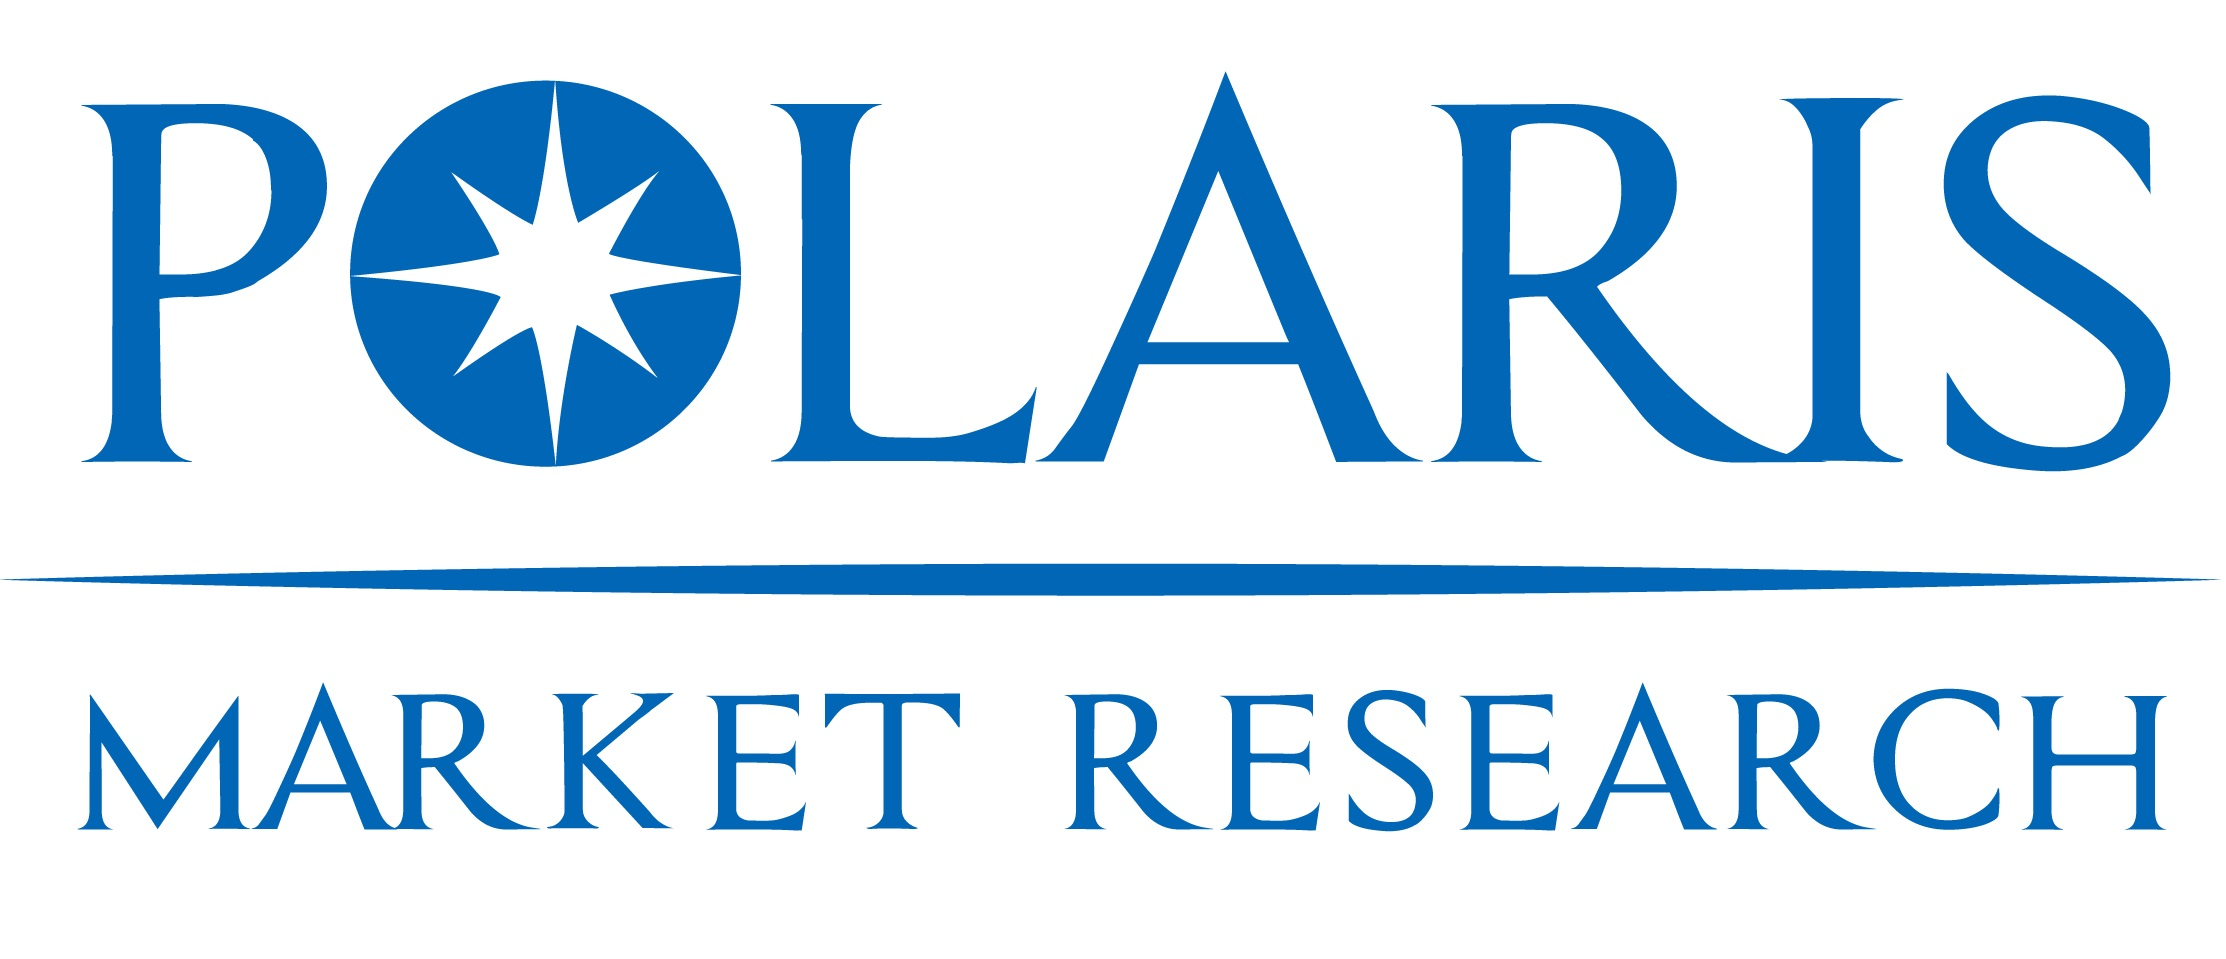 microRNA Market Size Is Projected To Reach $3.51 Billion By 2028 | CAGR: 20.1%: Polaris Market Research